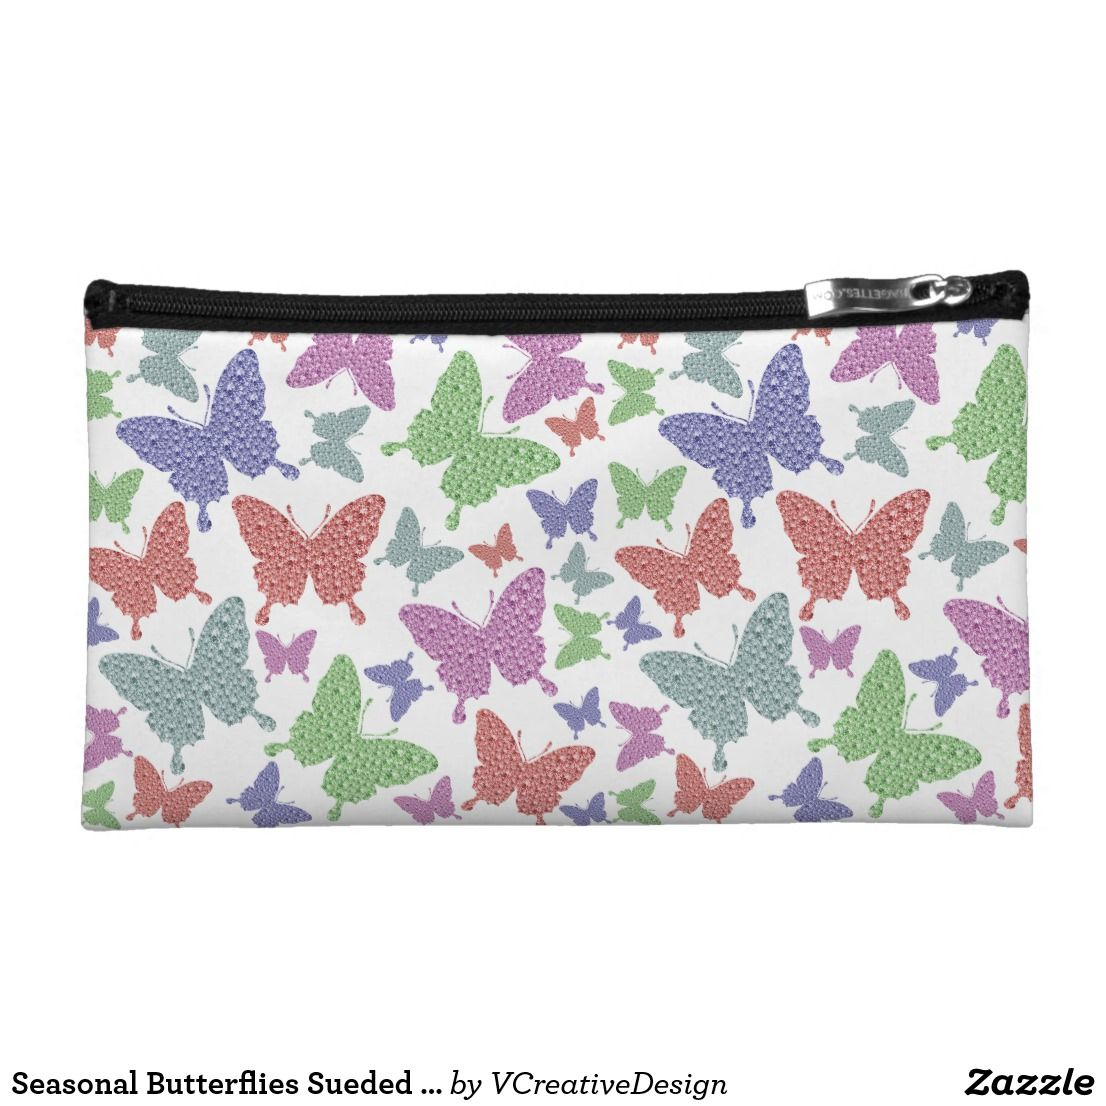 Seasonal Butterflies Sueded Accessory Bag Butterfly bags